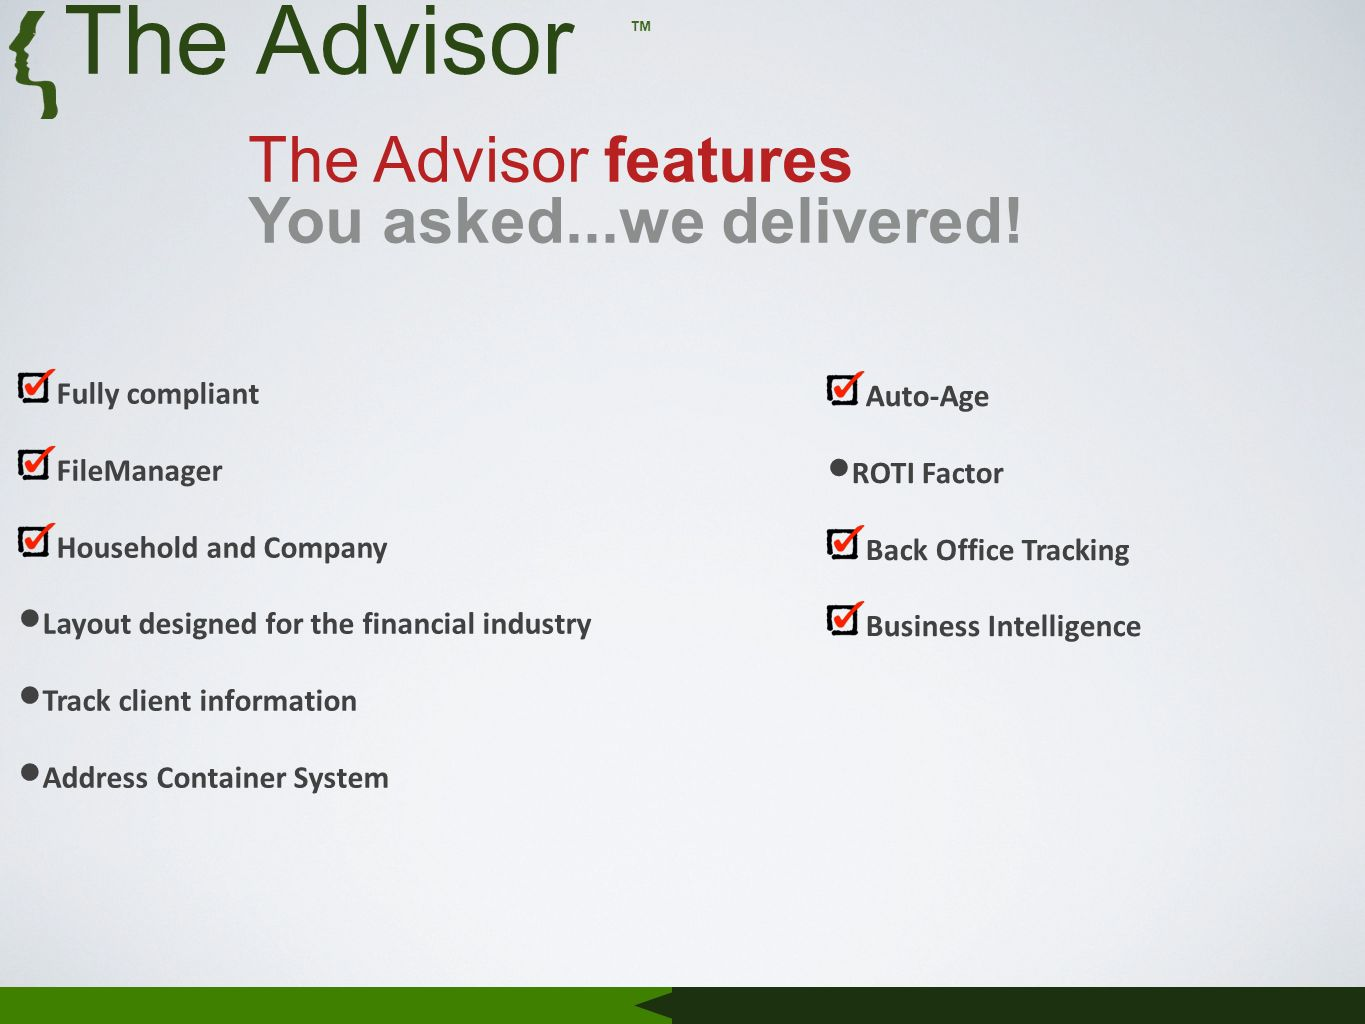 The Advisor features You asked...we delivered.